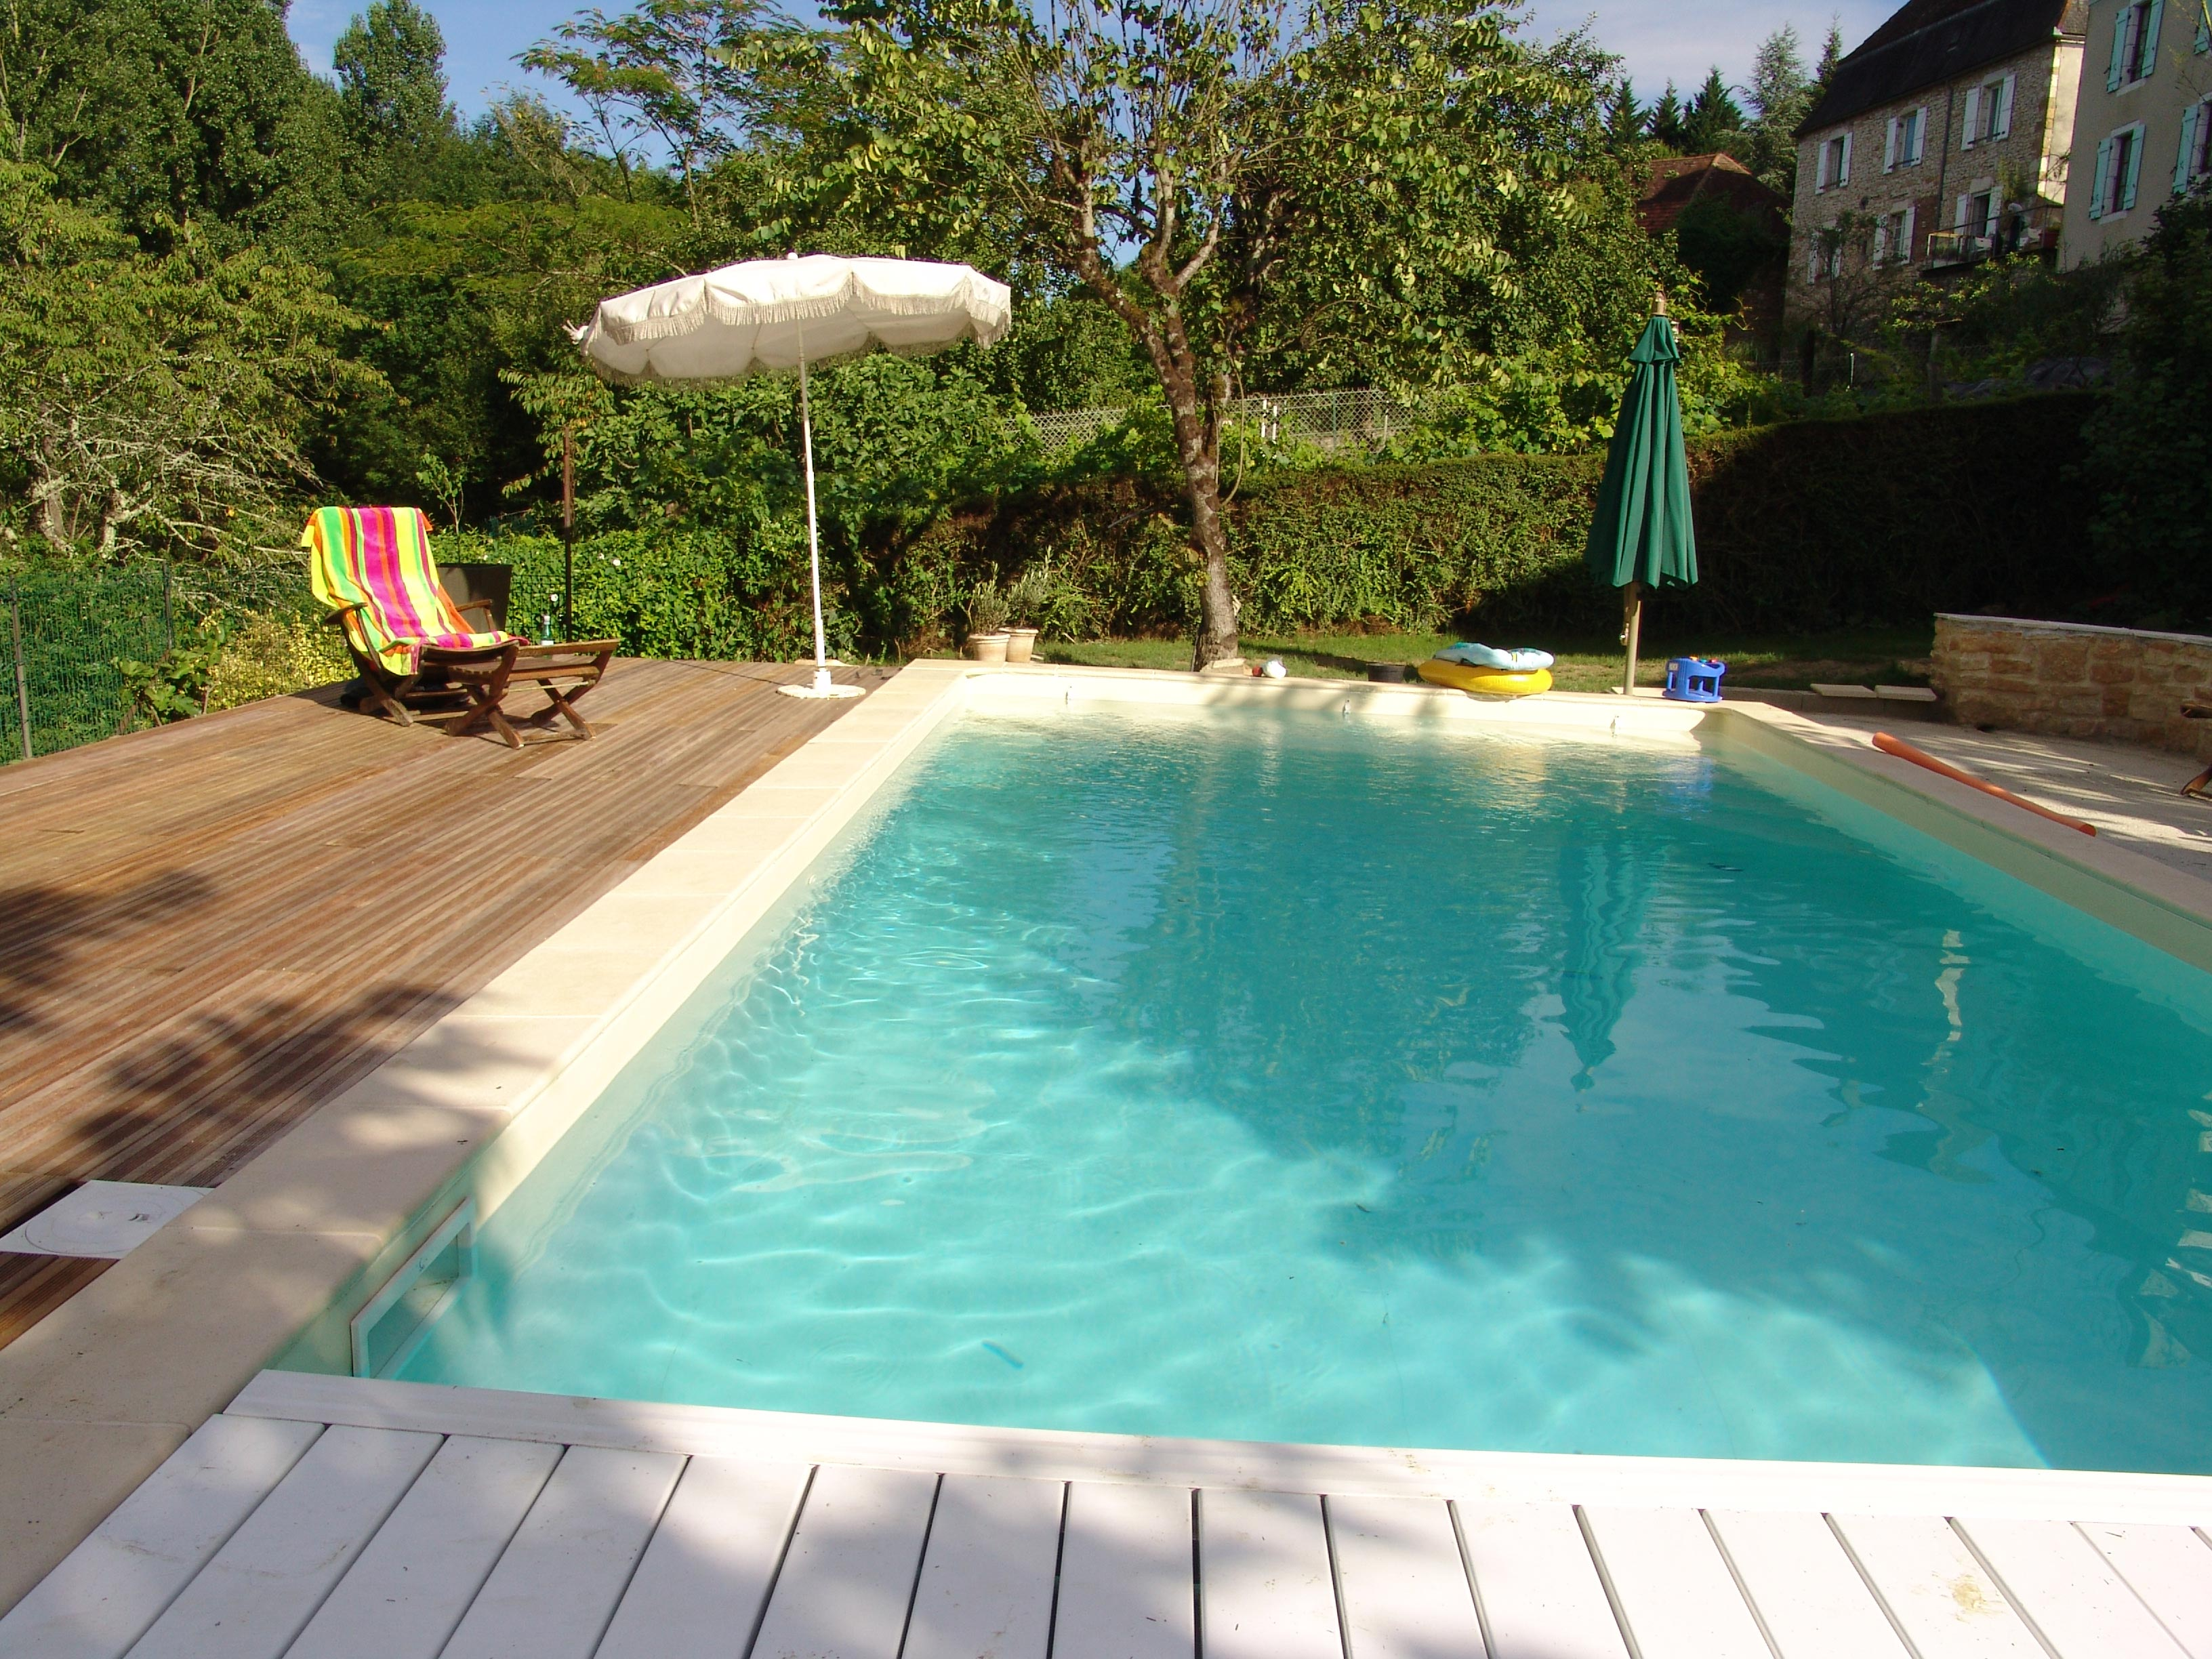 Piscine jardin images et photos arts et voyages for Article piscine